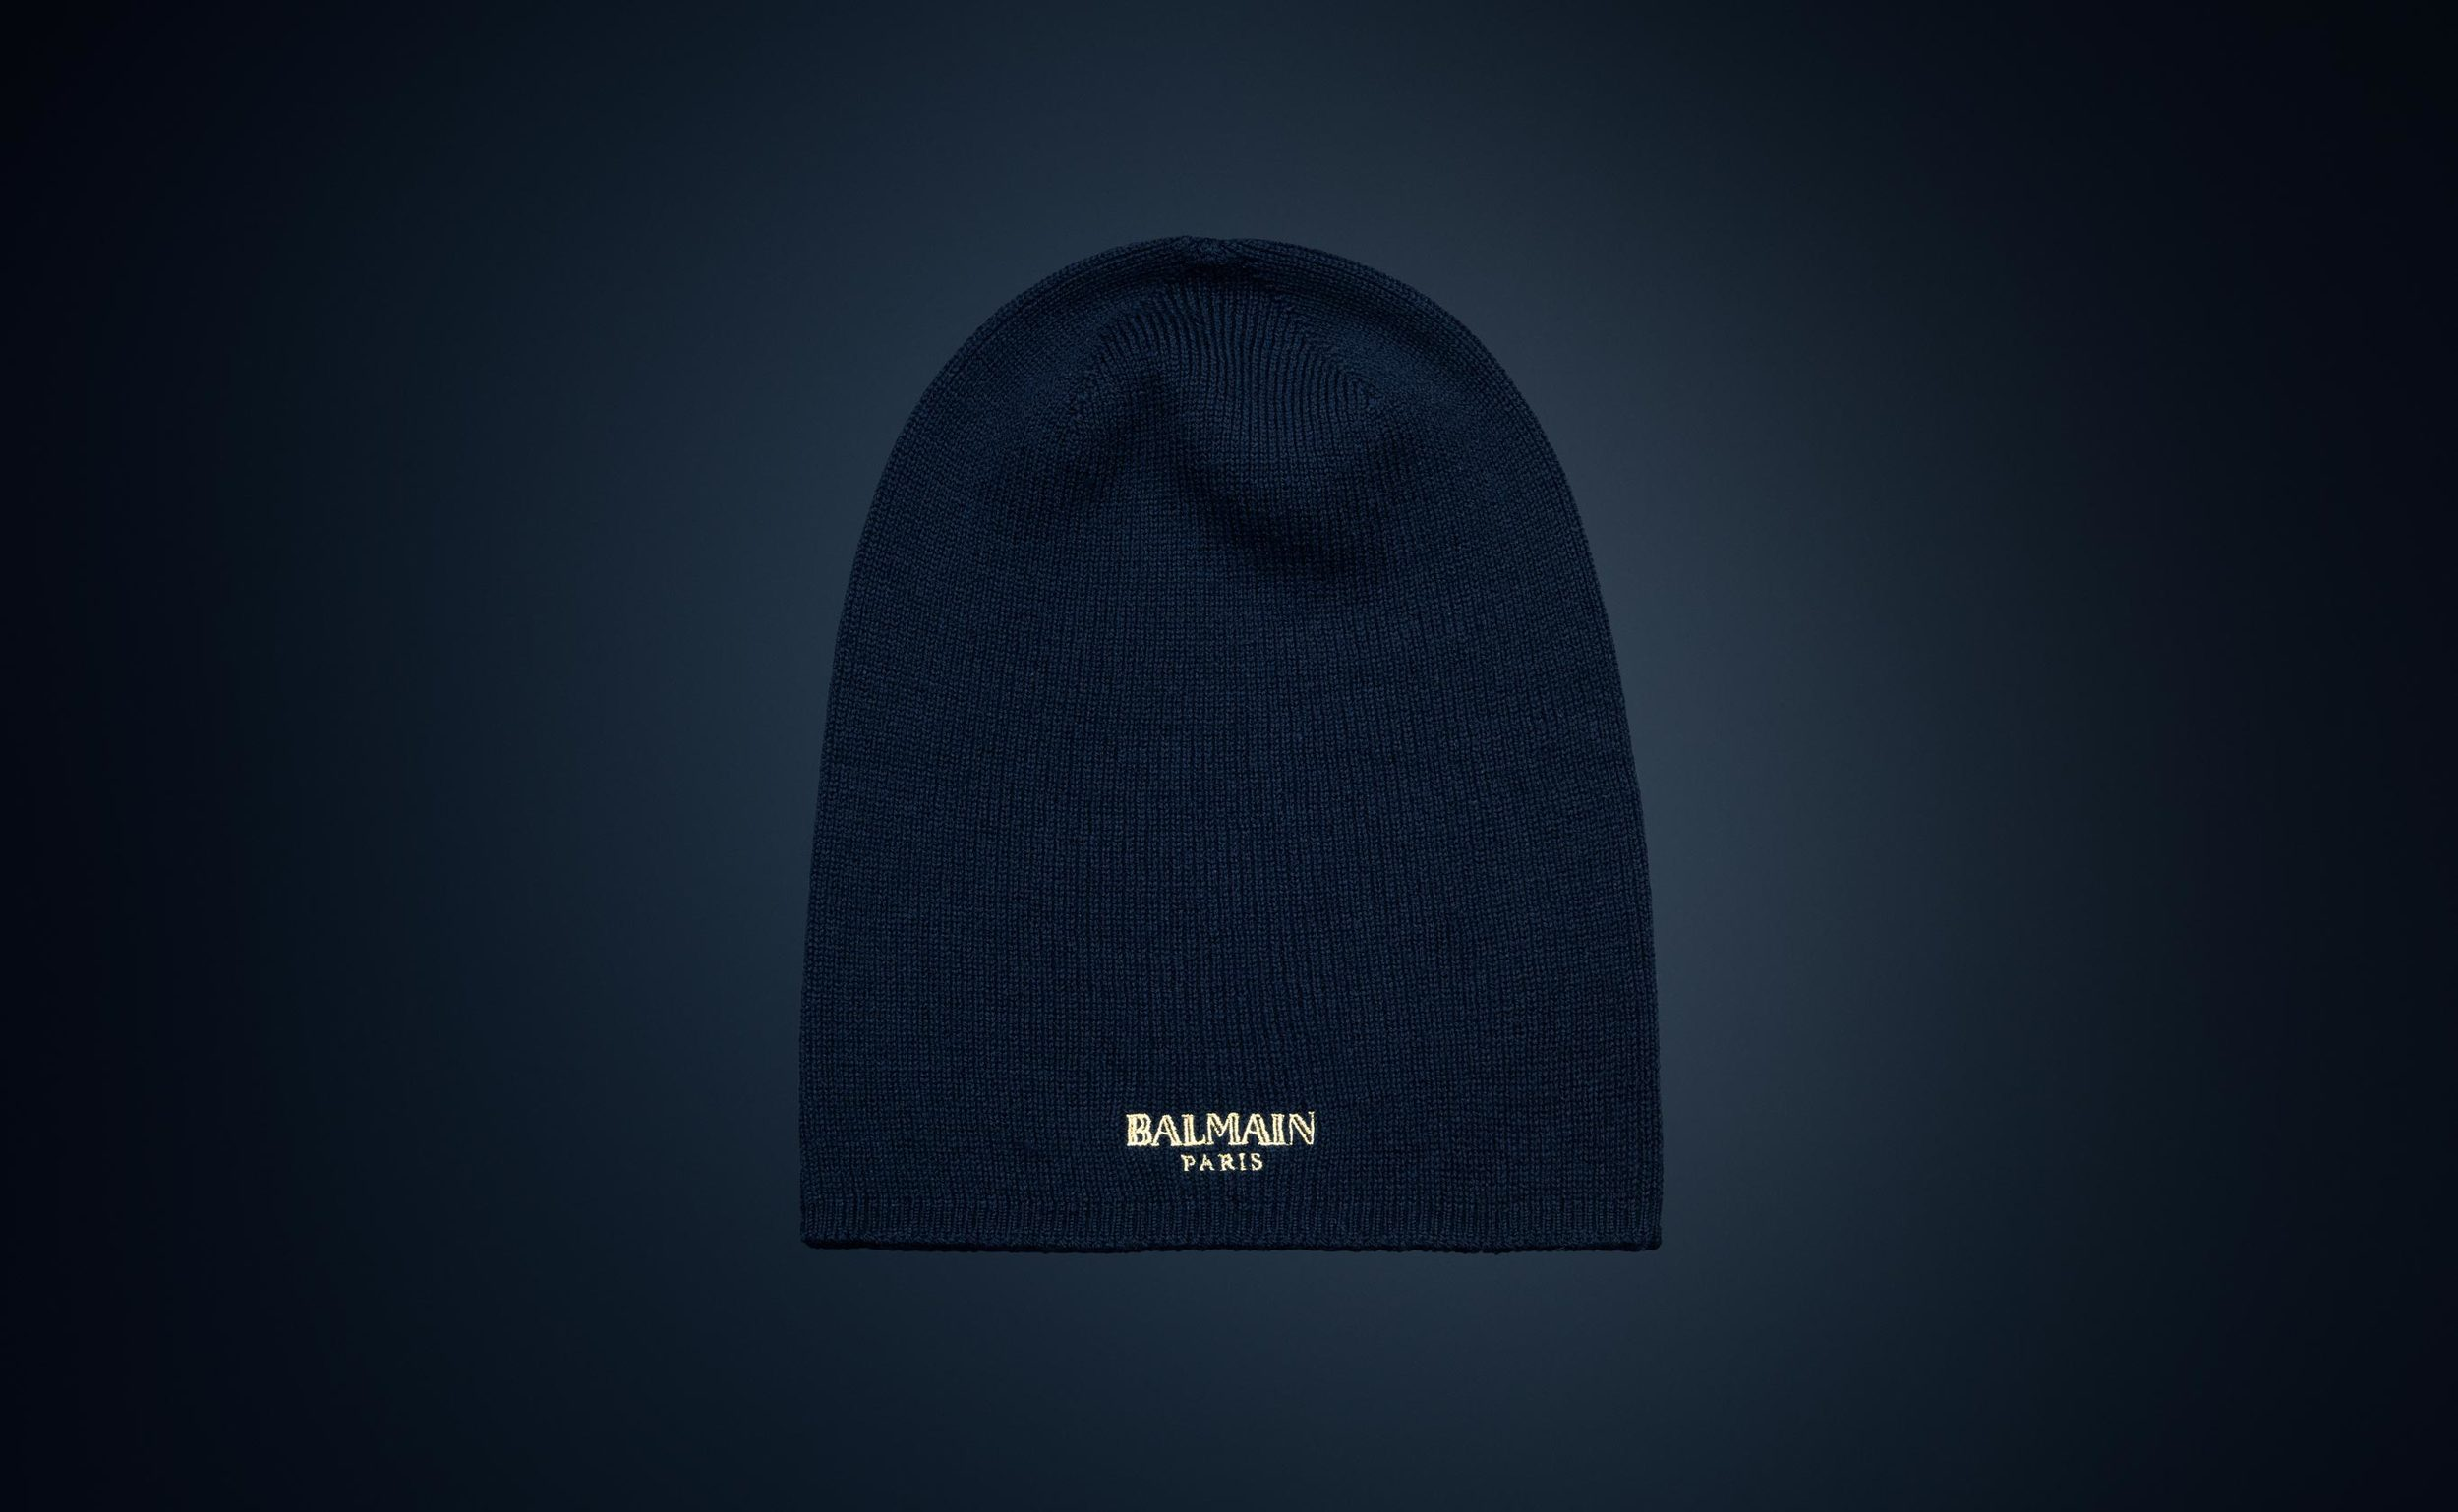 Ribbed Wool Hat - $17.99